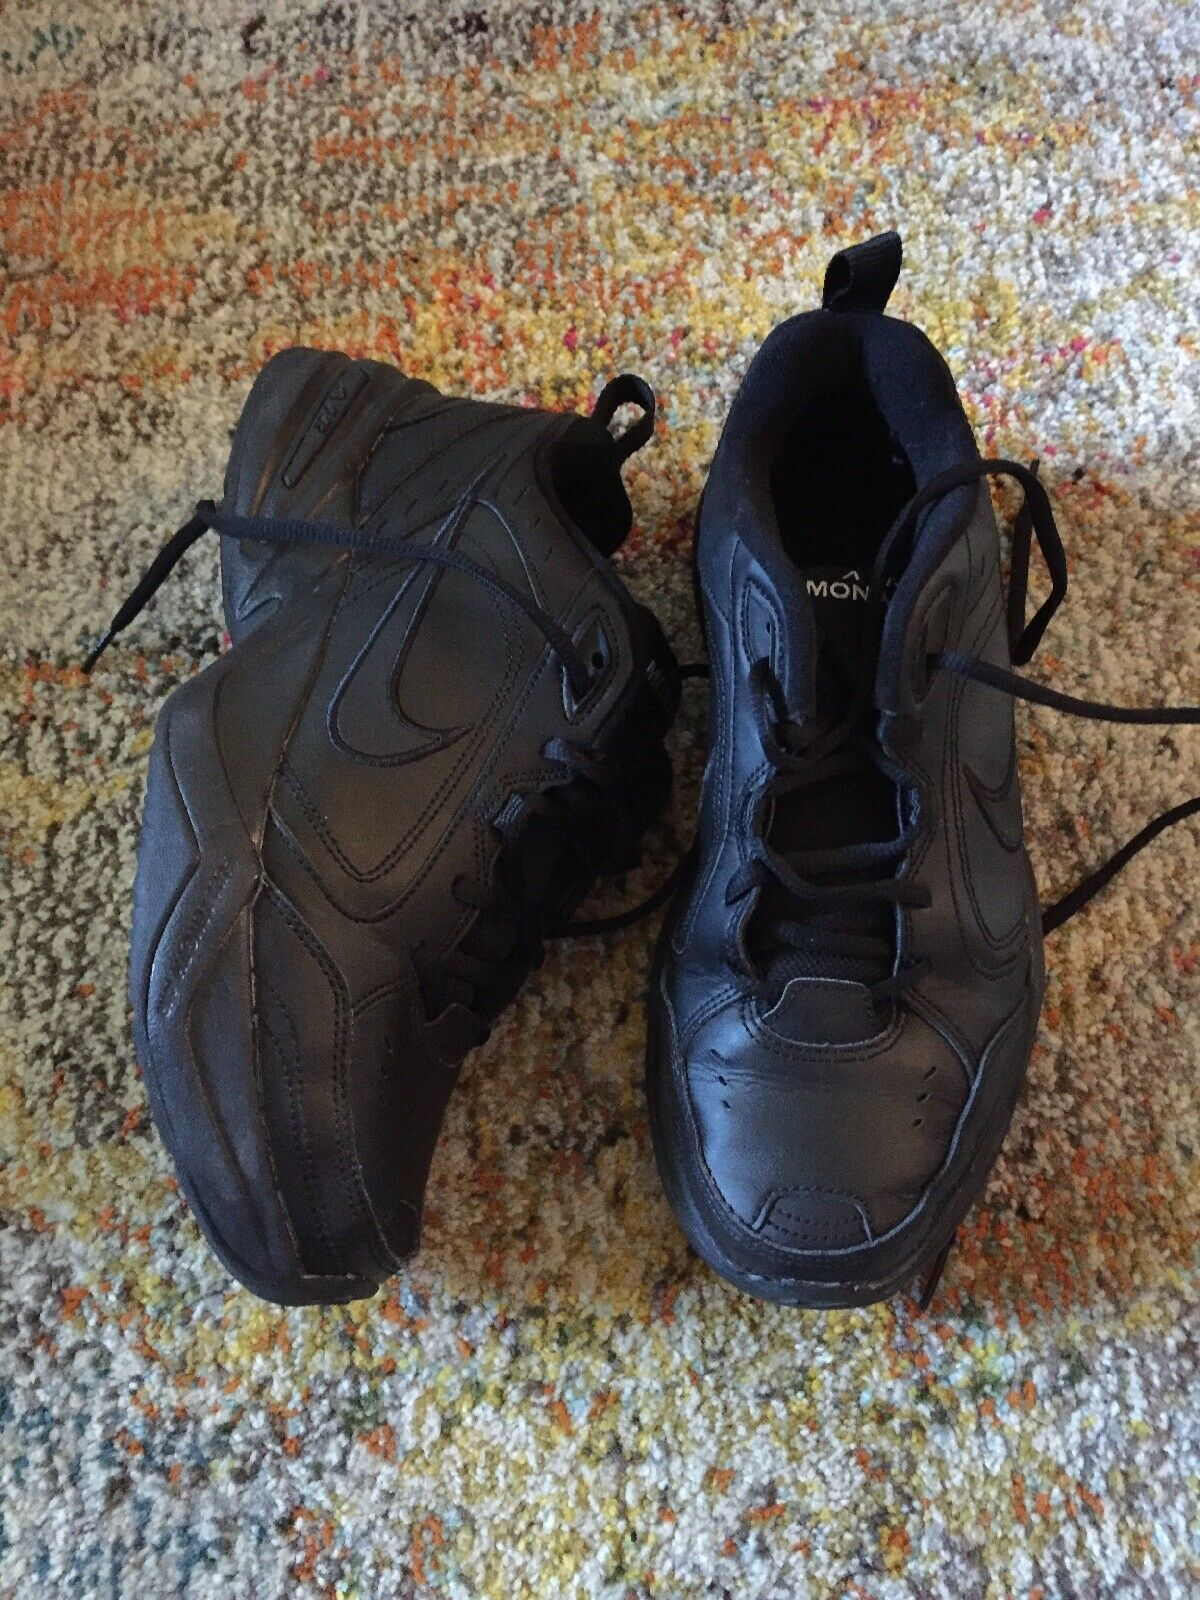 NIKE Air Monarch Black Men's Walking shoes Athletic Casual Leather Size 9US